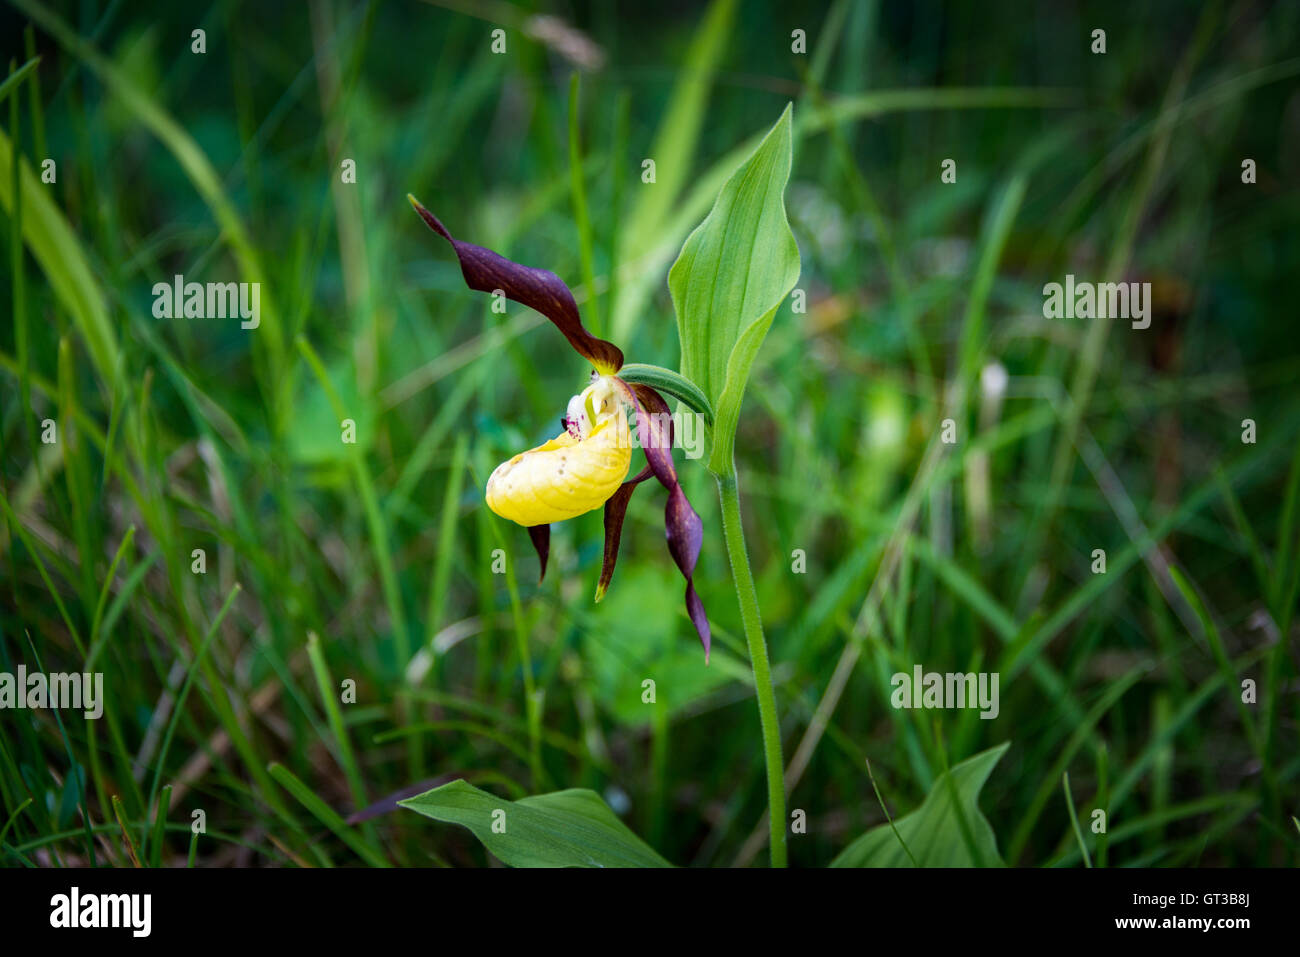 Ladies slipper orchid, Gait Barrows National Nature Reserve, Arnside, Cumbria, UK - Stock Image